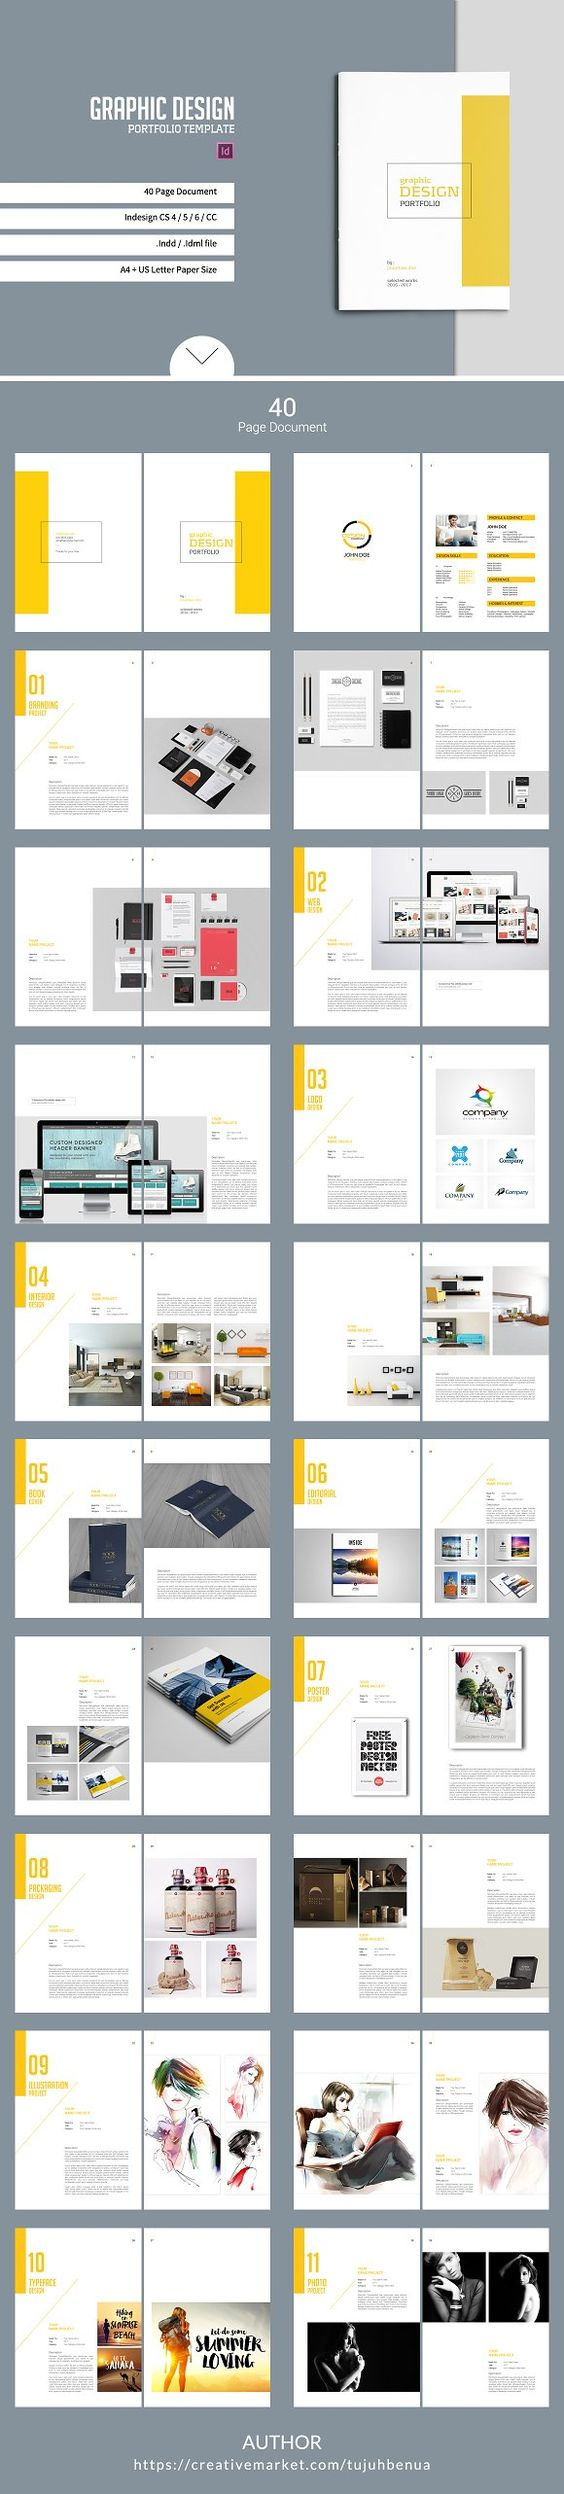 graphic design portfolio template by tujuhbenua on  creativemarket